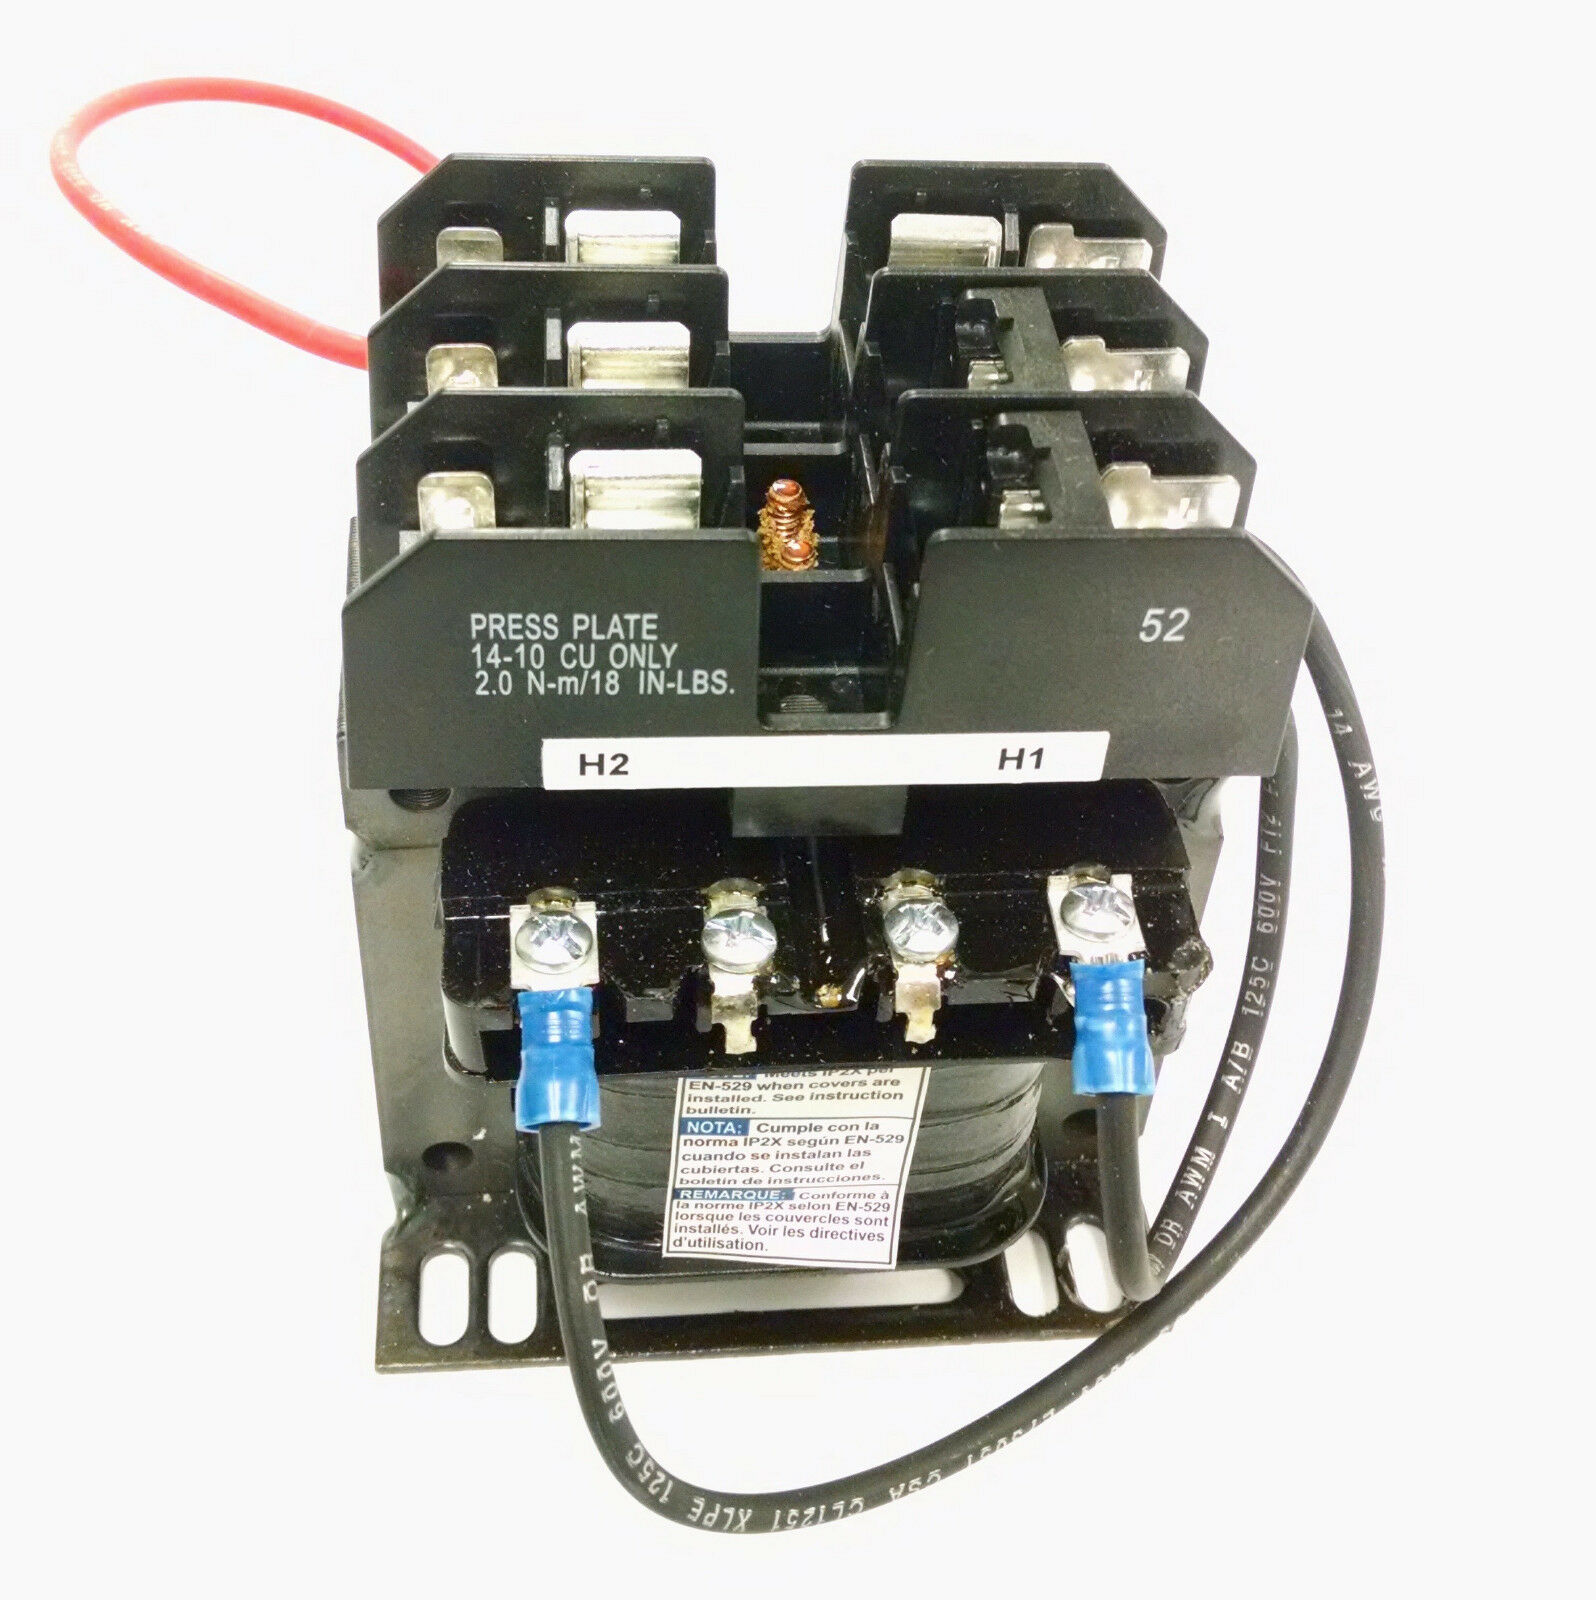 Square D 9070tf100d3 Control Transformer 01kva W Fuse Holder In 220 Screw Box 1 Of 5